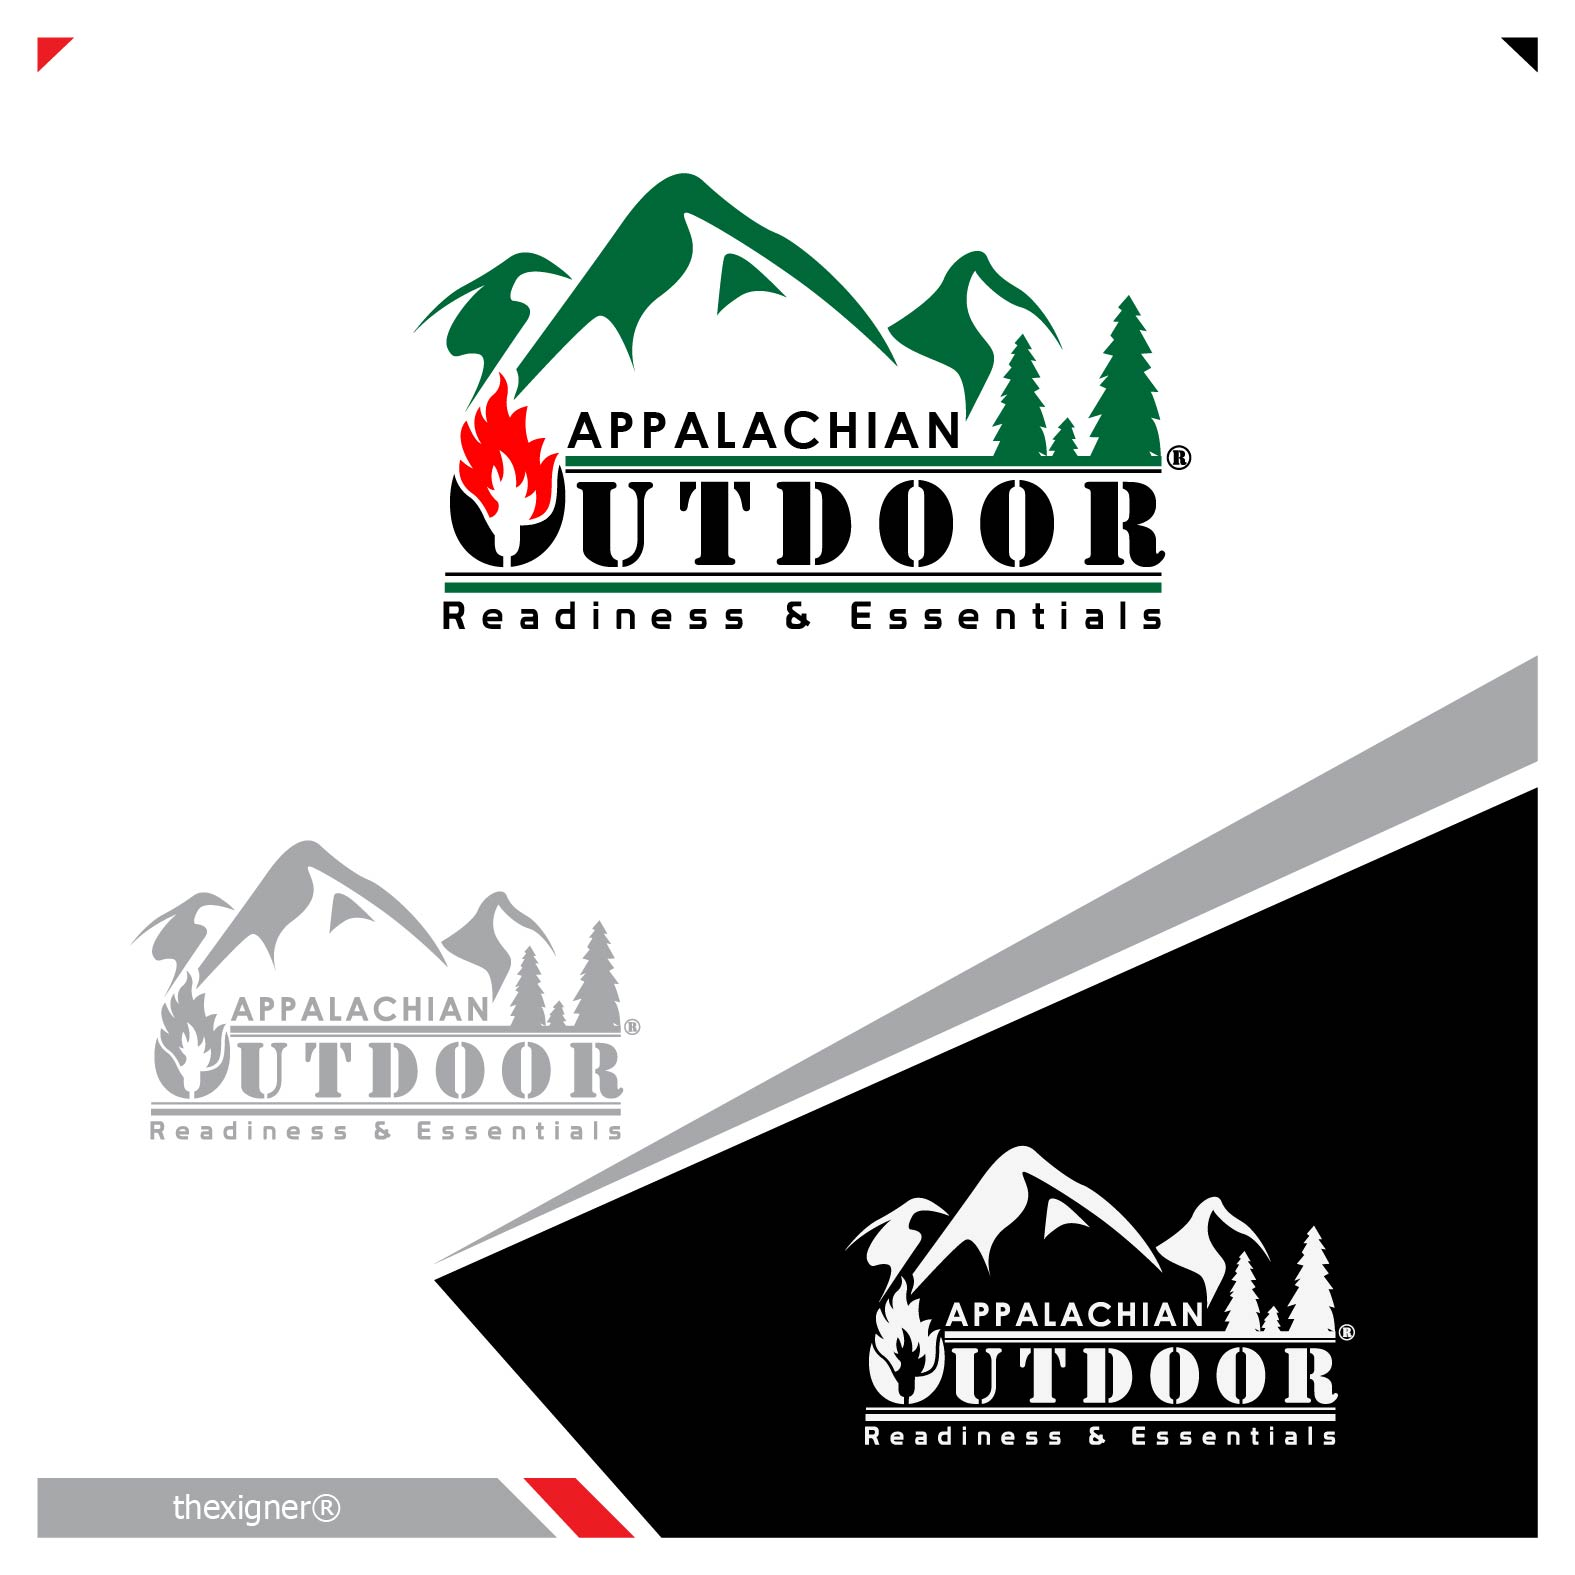 Logo Design by lagalag - Entry No. 36 in the Logo Design Contest Imaginative Logo Design for Appalachian Outdoor Readiness & Essentials.